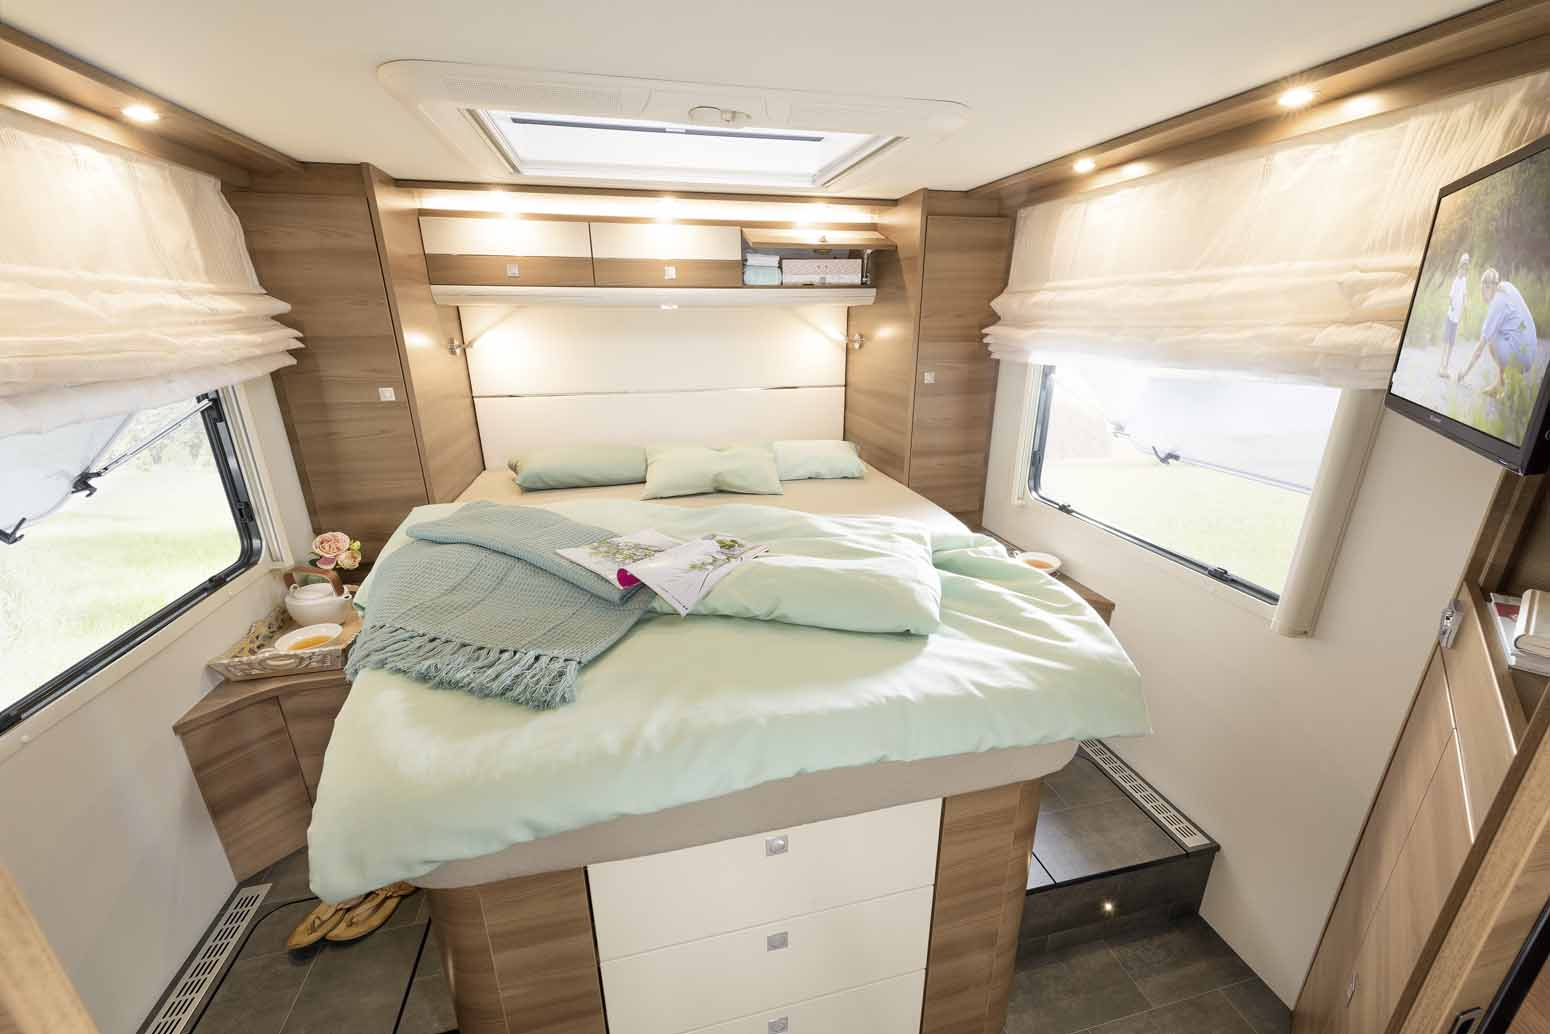 It doesn't get any more comfortable. The Queens bed is accessible from three sides.Left and right two large wardrobes offer additional storage space